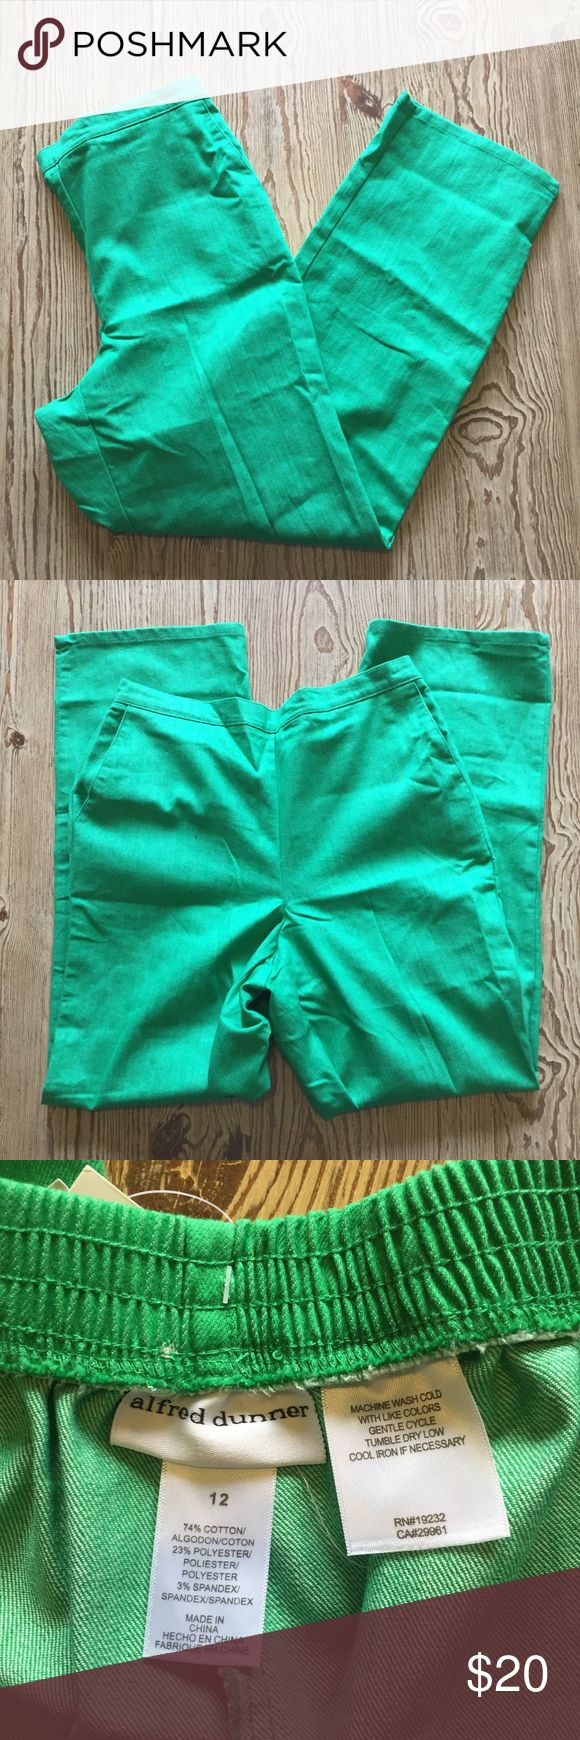 NWT Kelly Green Pants Really cute Kelly green shade pants. Bought new from Macy's, still with tags. Side slit pockets and elastic band in the back. Stretch material with 74% cotton, 23% polyester and 3% spandex. Alfred Dunner Pants